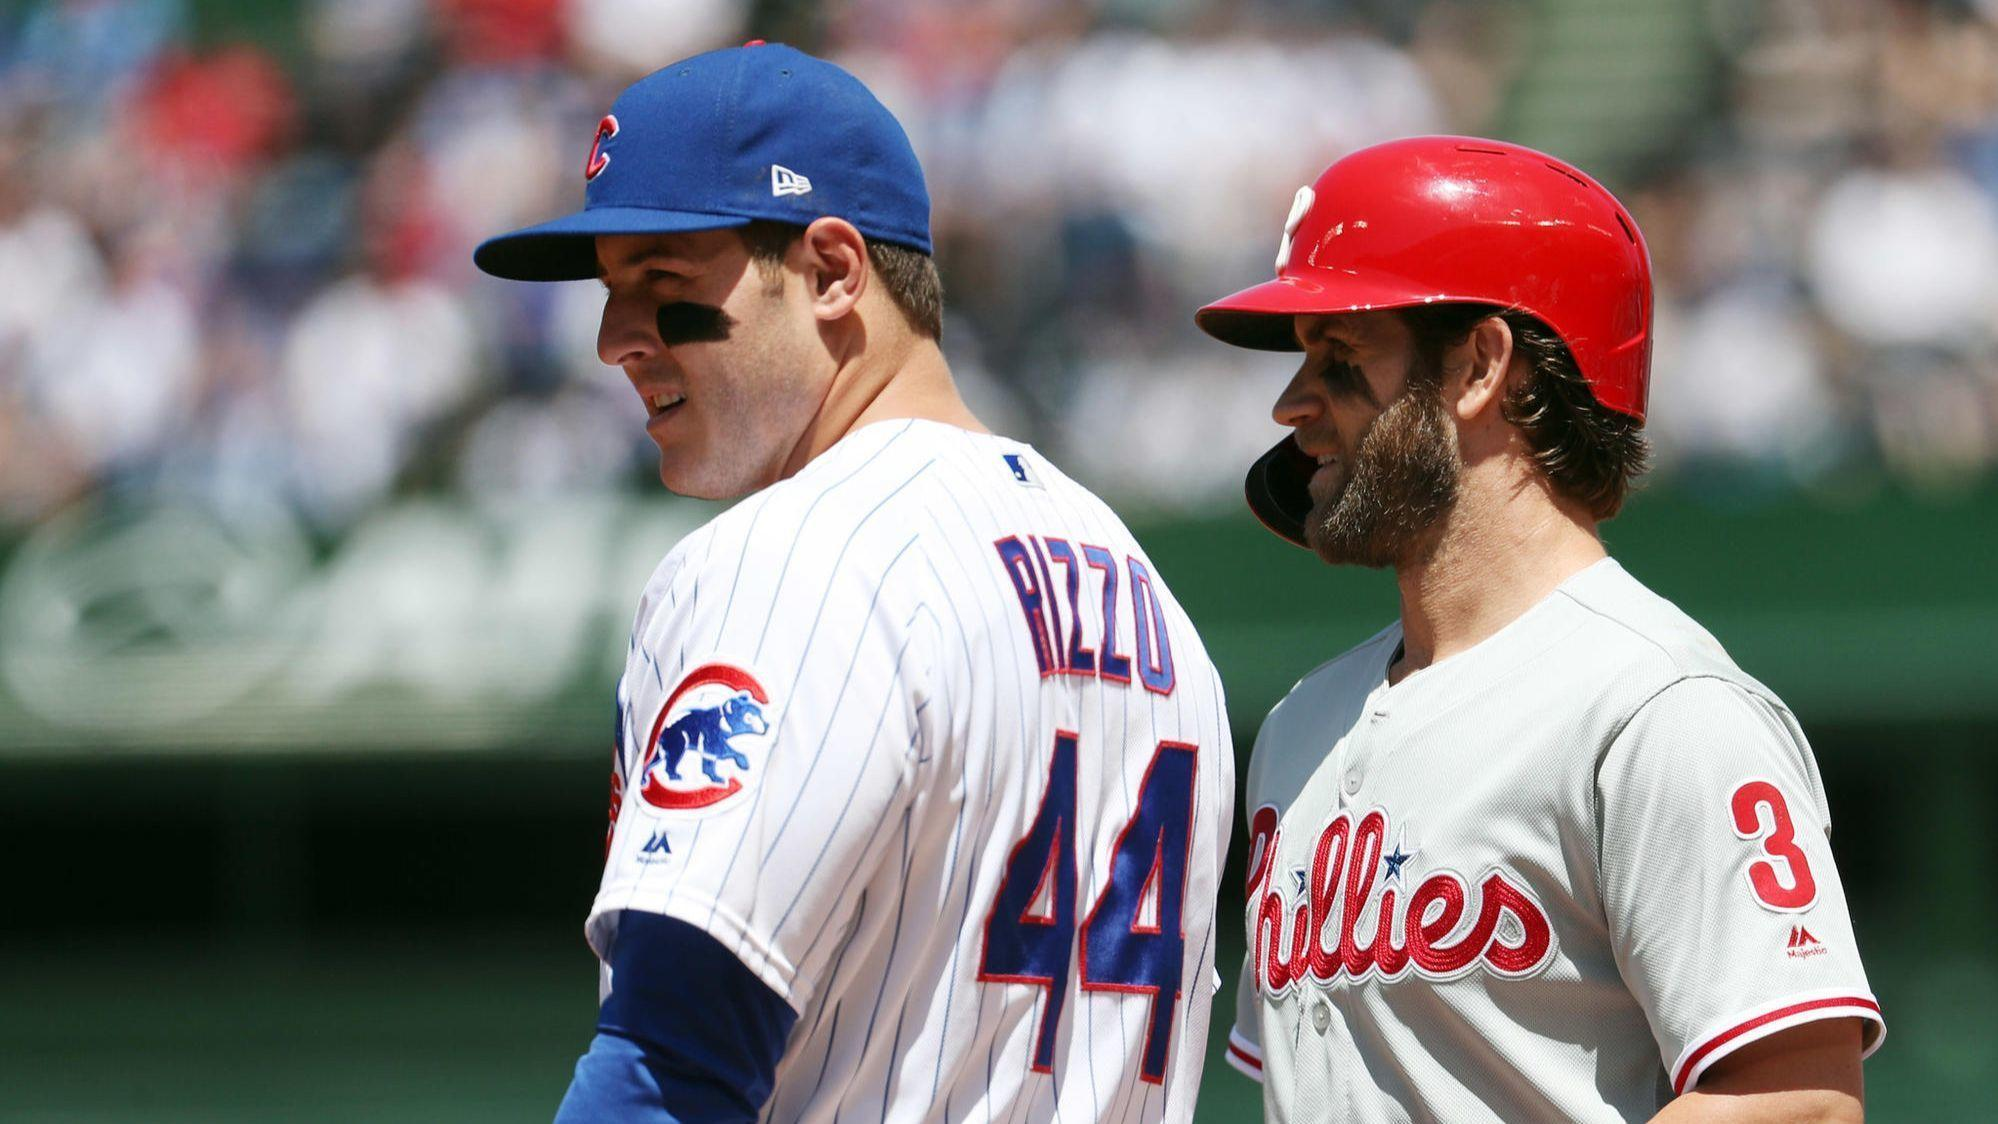 October baseball in May? Plus a look back at the epic Cubs-Phillies slugfest 40 years ago. Paul Sullivan's 5 thoughts on this week's series.